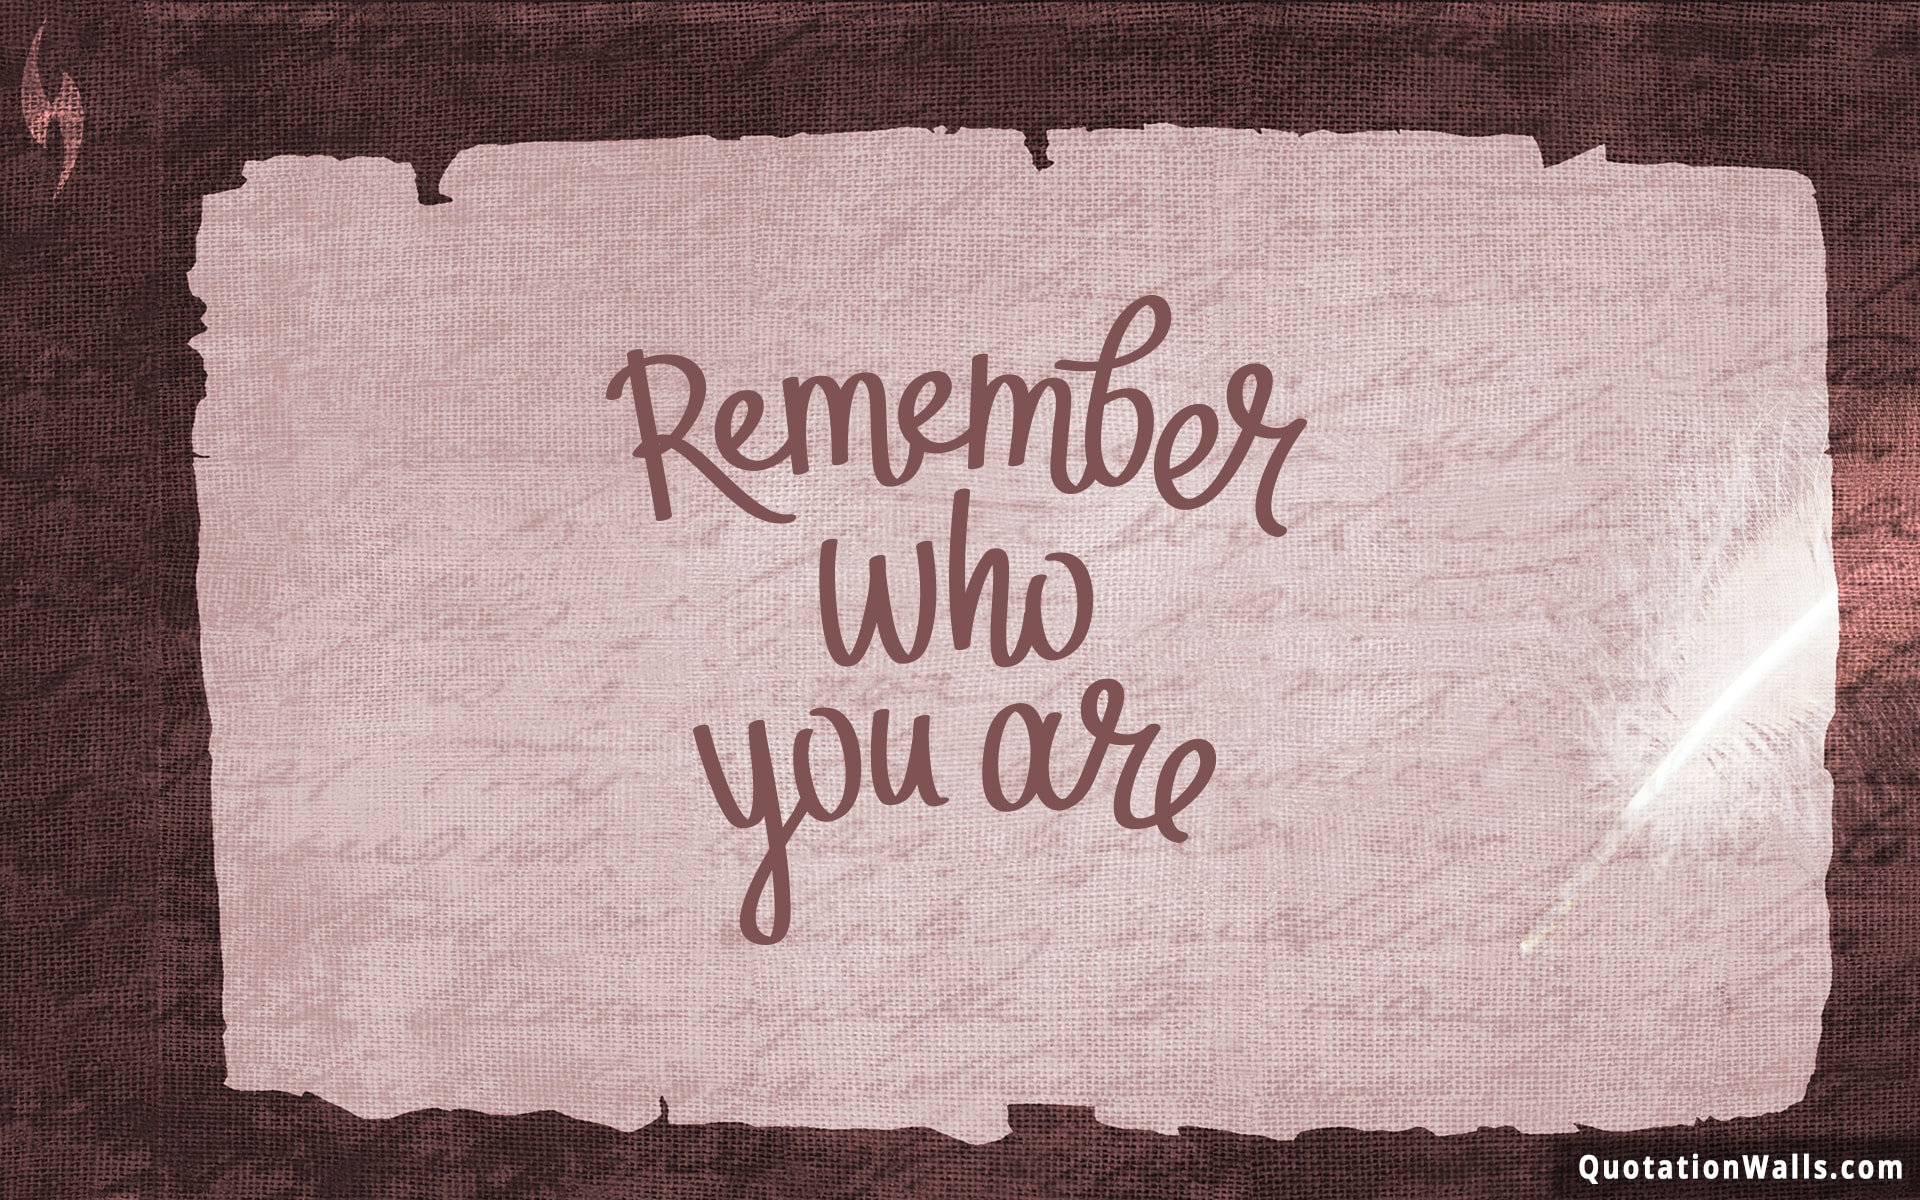 remember who you are Ron rose reminds us of tough times when god's people remembered who and whose they are.